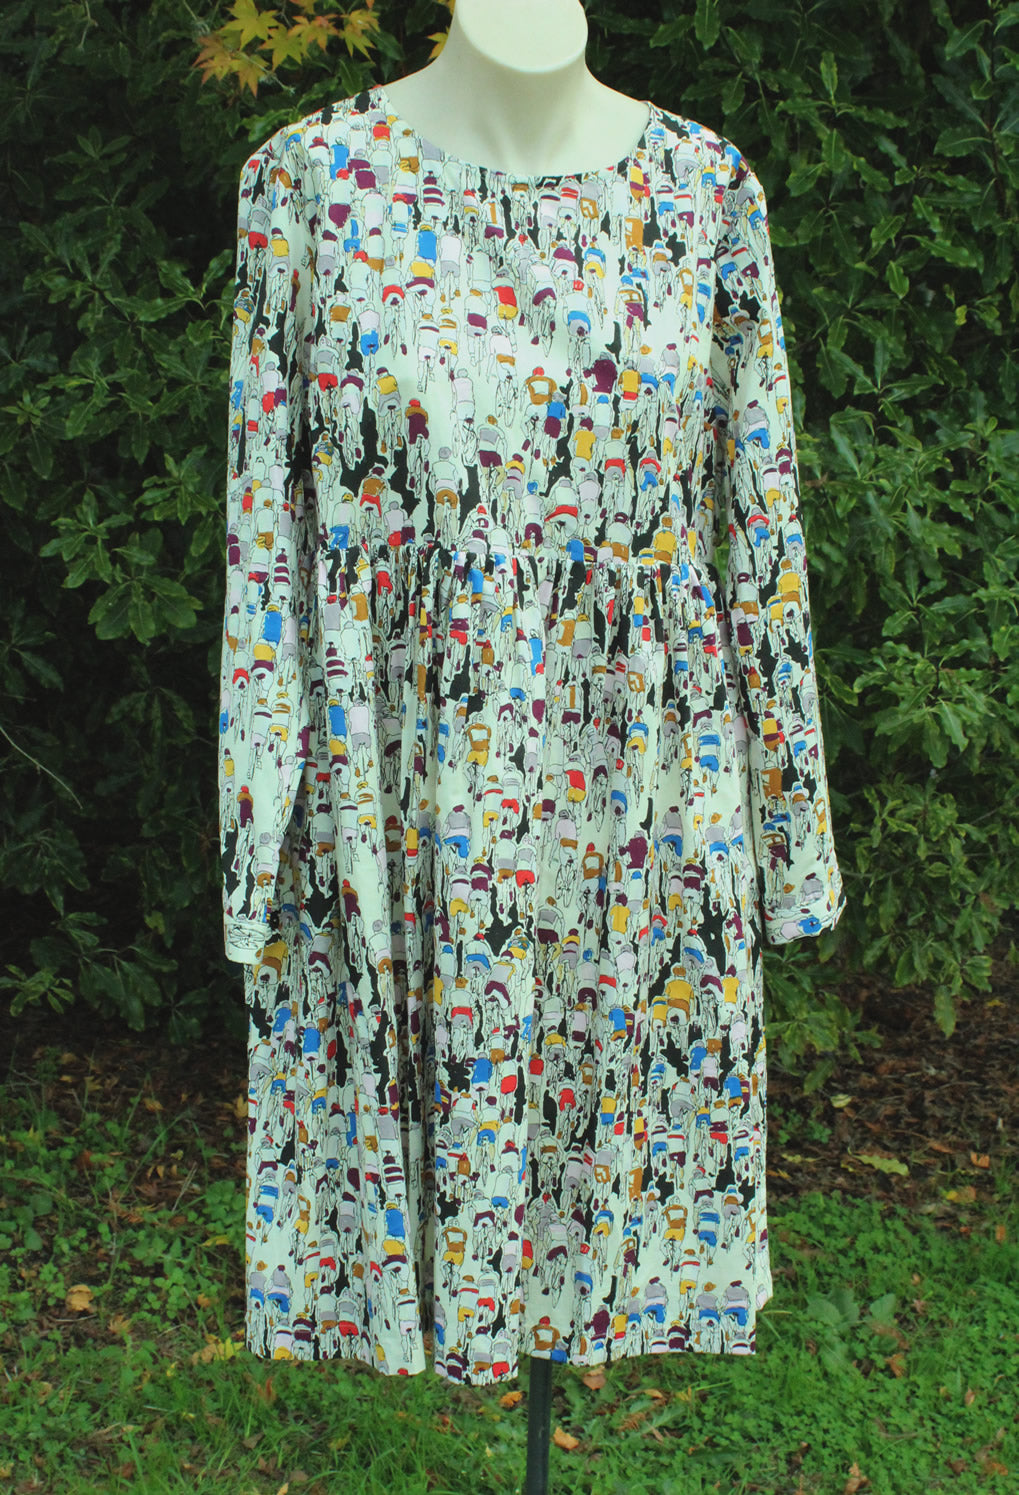 Dress on Manequin. Long Sleeves all over cycle print.